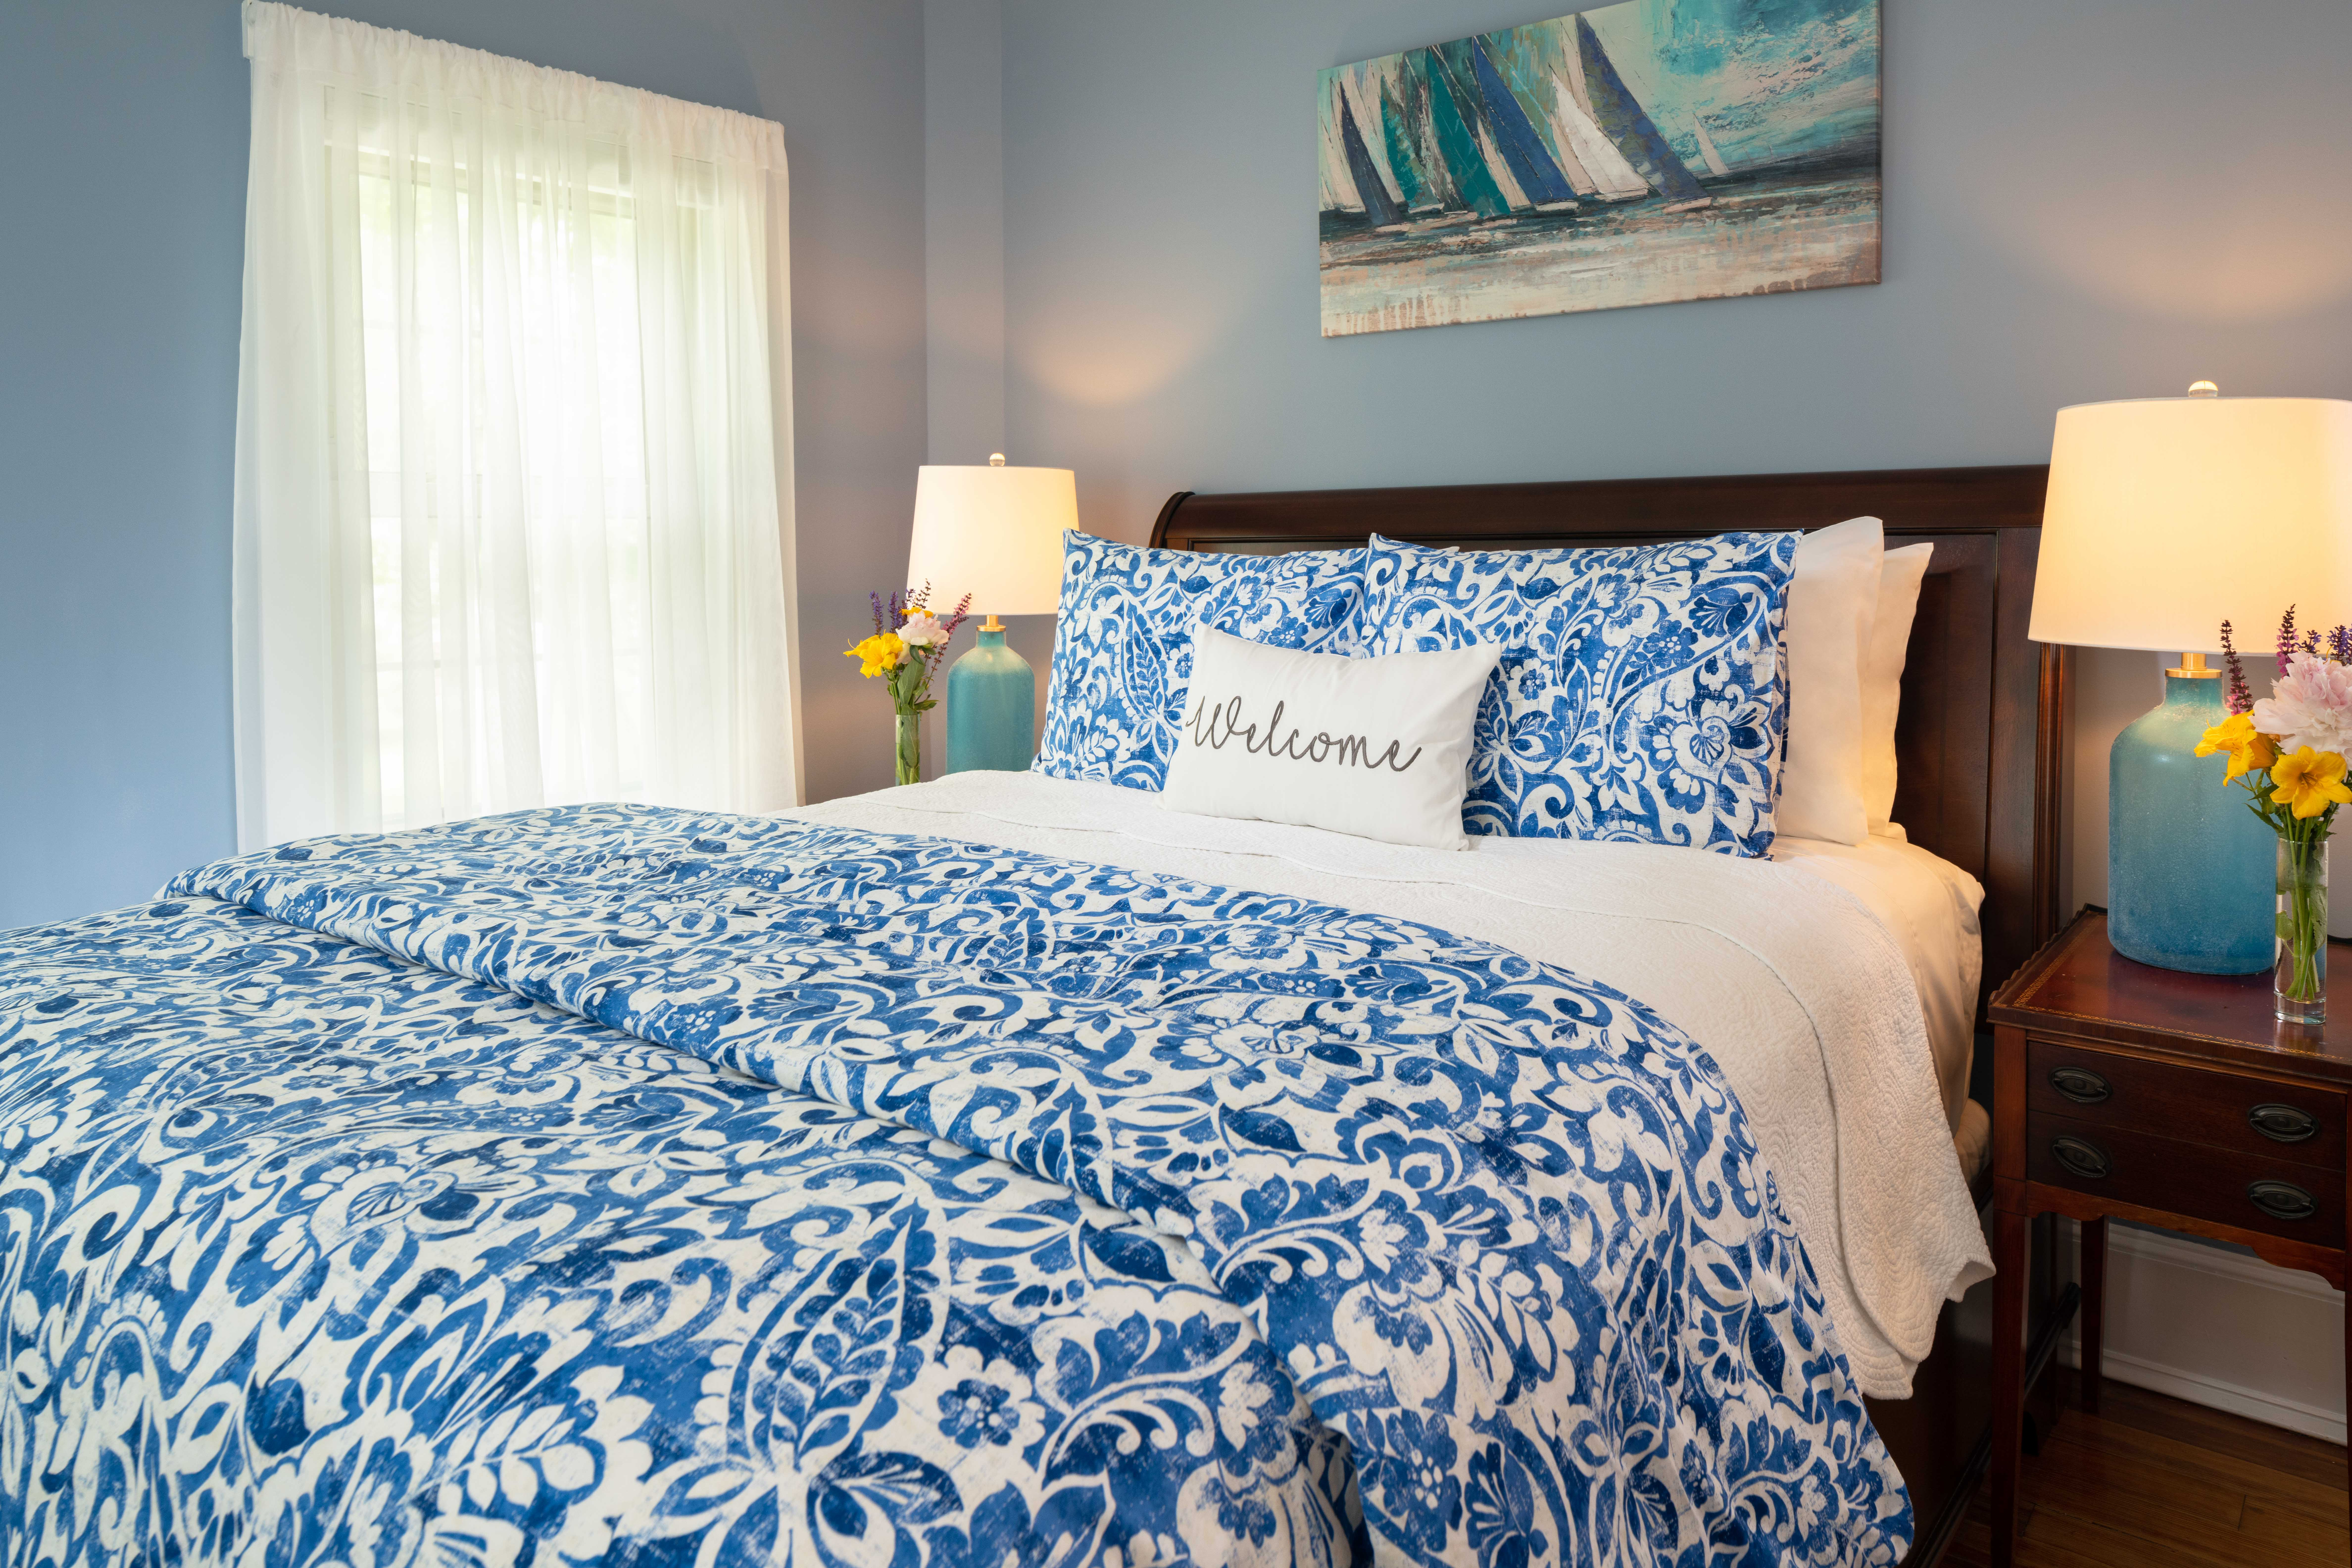 Side view of a queen bed in a room with two windows and blue walls